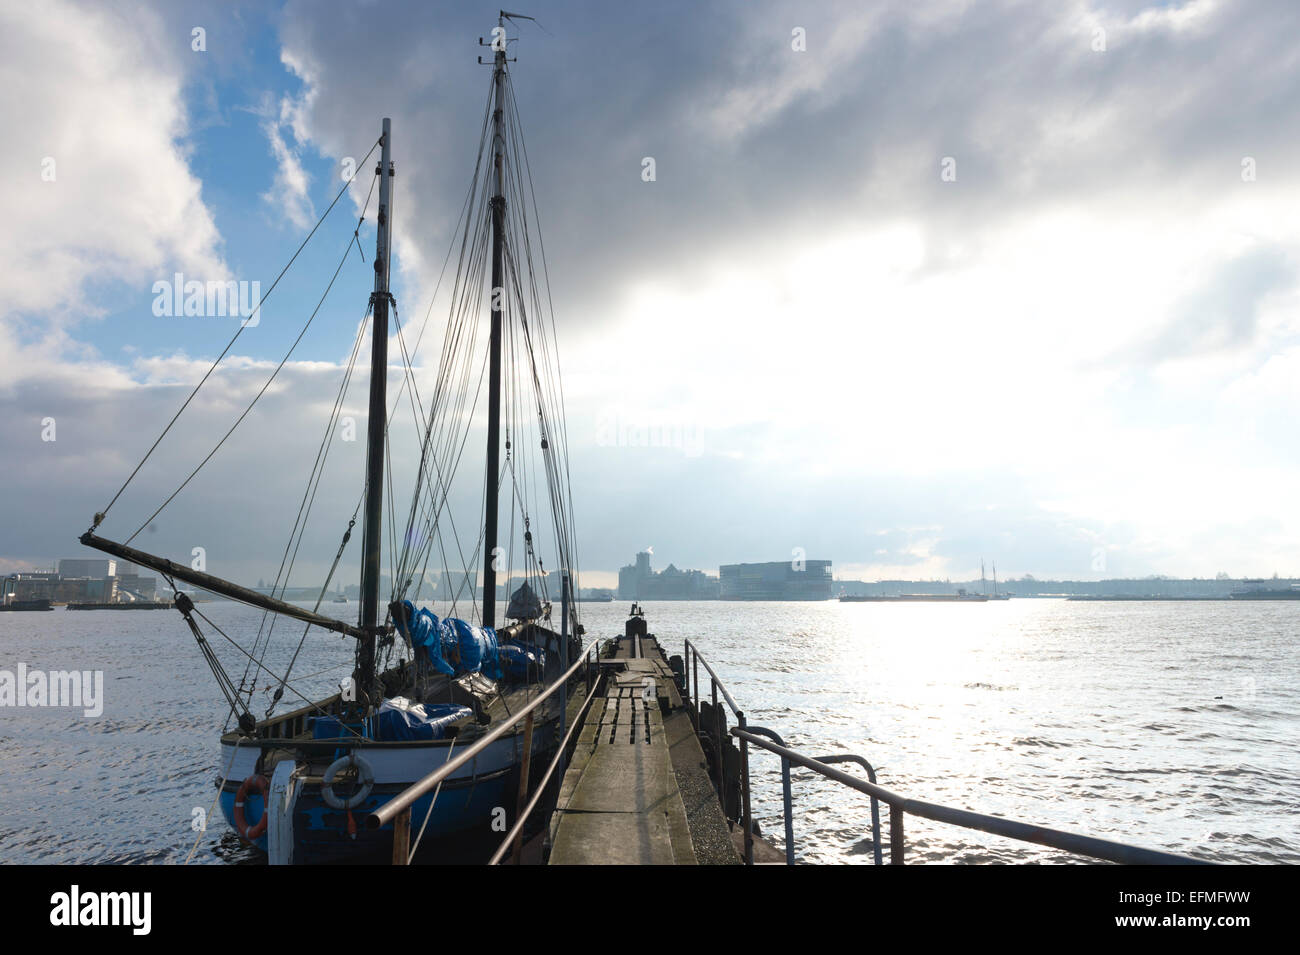 Winter light floods the Ij seen from a wharf in Amsterdam North, with an old Dutch sailing barge in the foreground - Stock Image